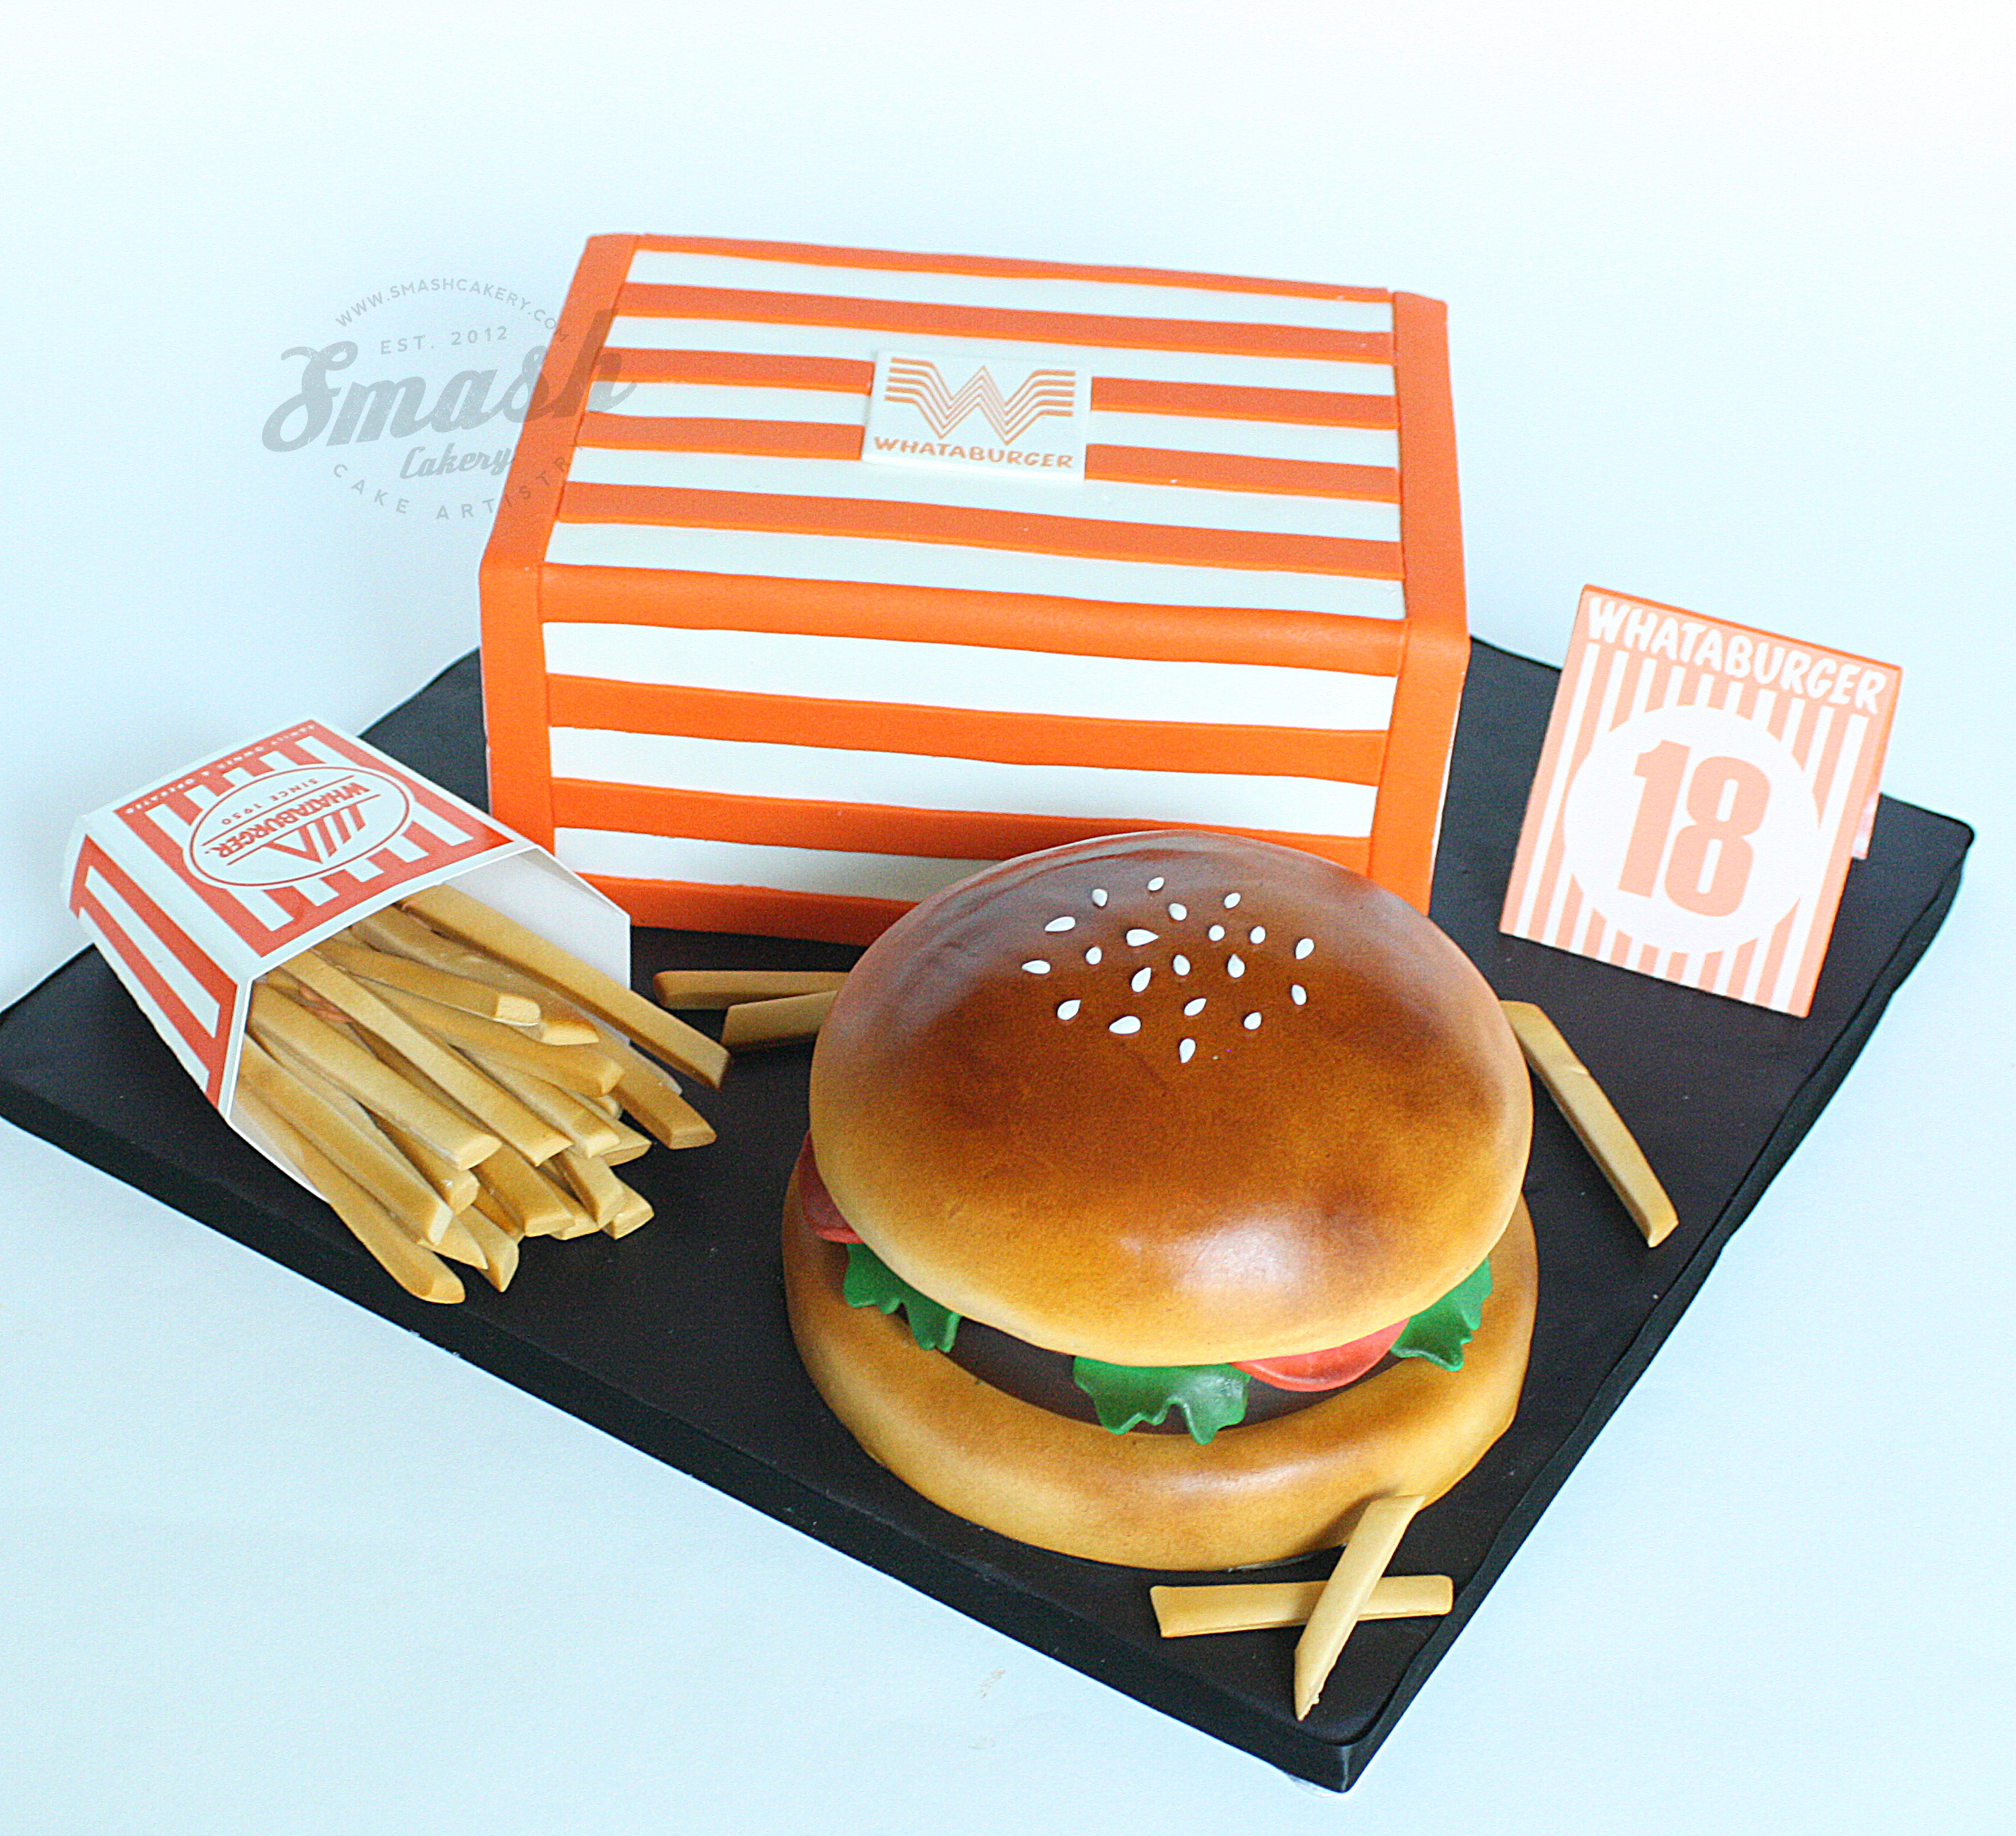 whataburger18cake copy